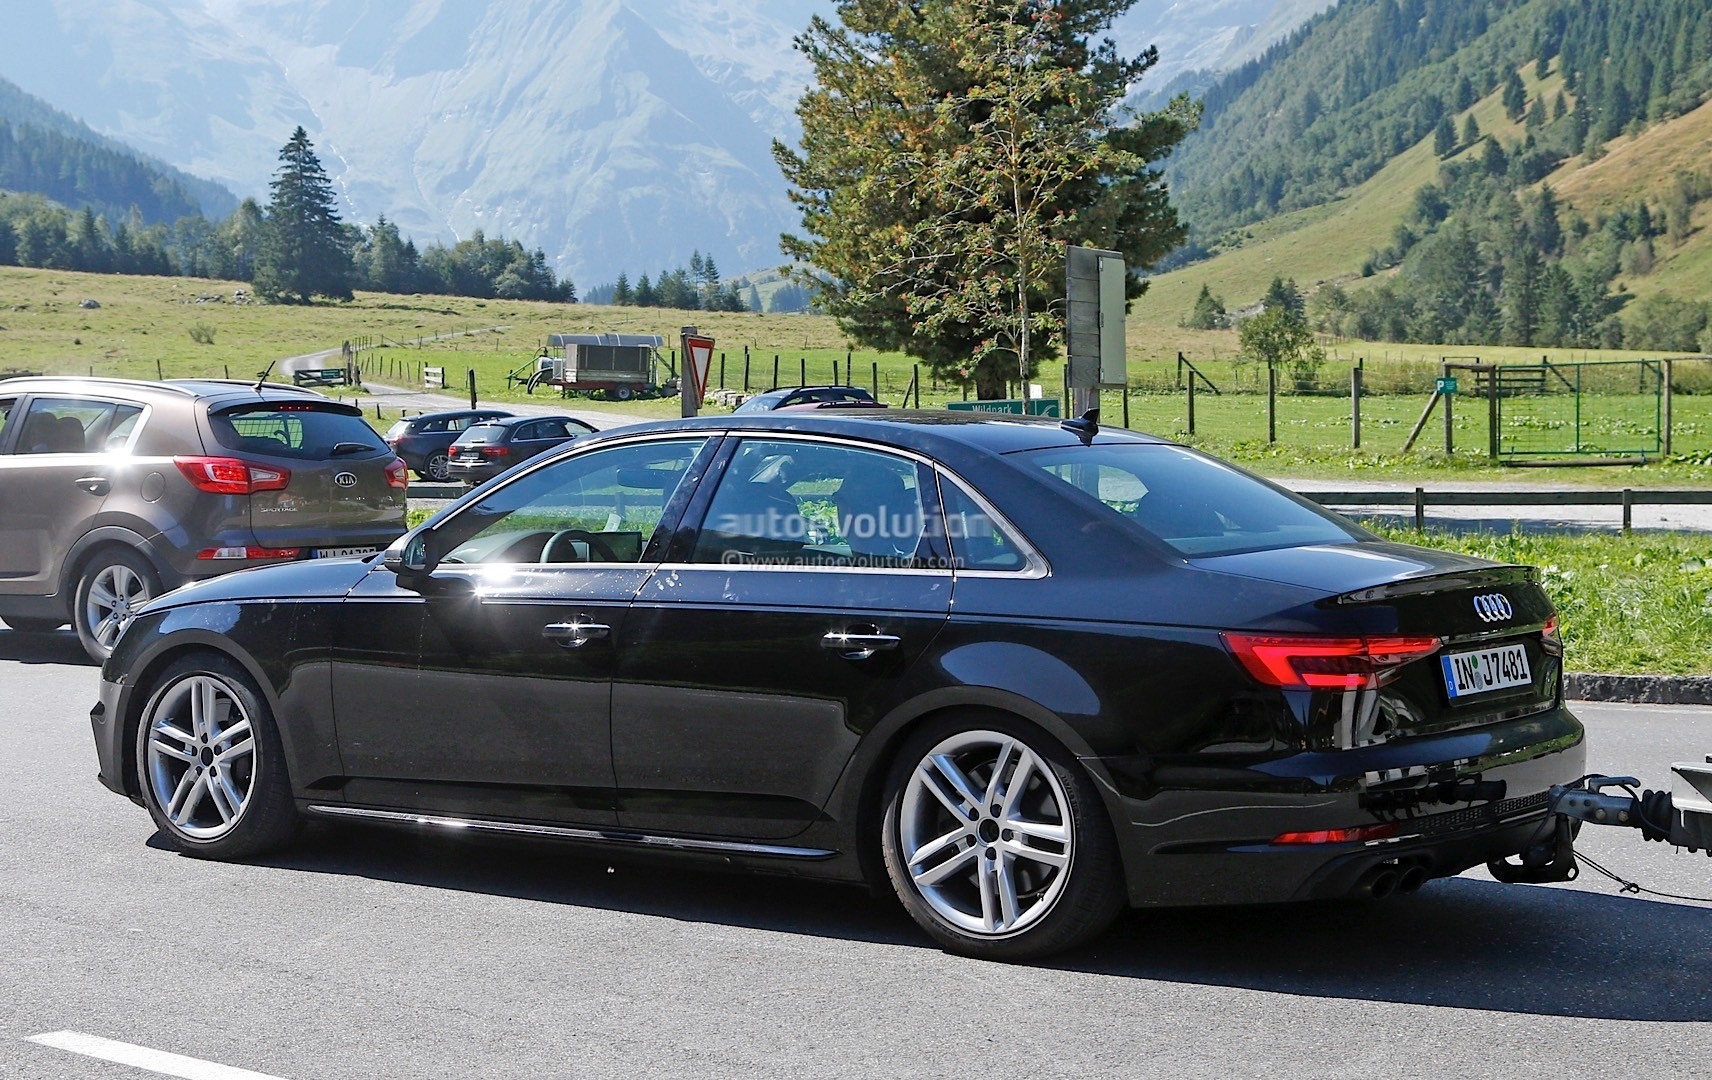 2017 audi s4 spotted testing in the alps the camouflage is completely gone autoevolution. Black Bedroom Furniture Sets. Home Design Ideas